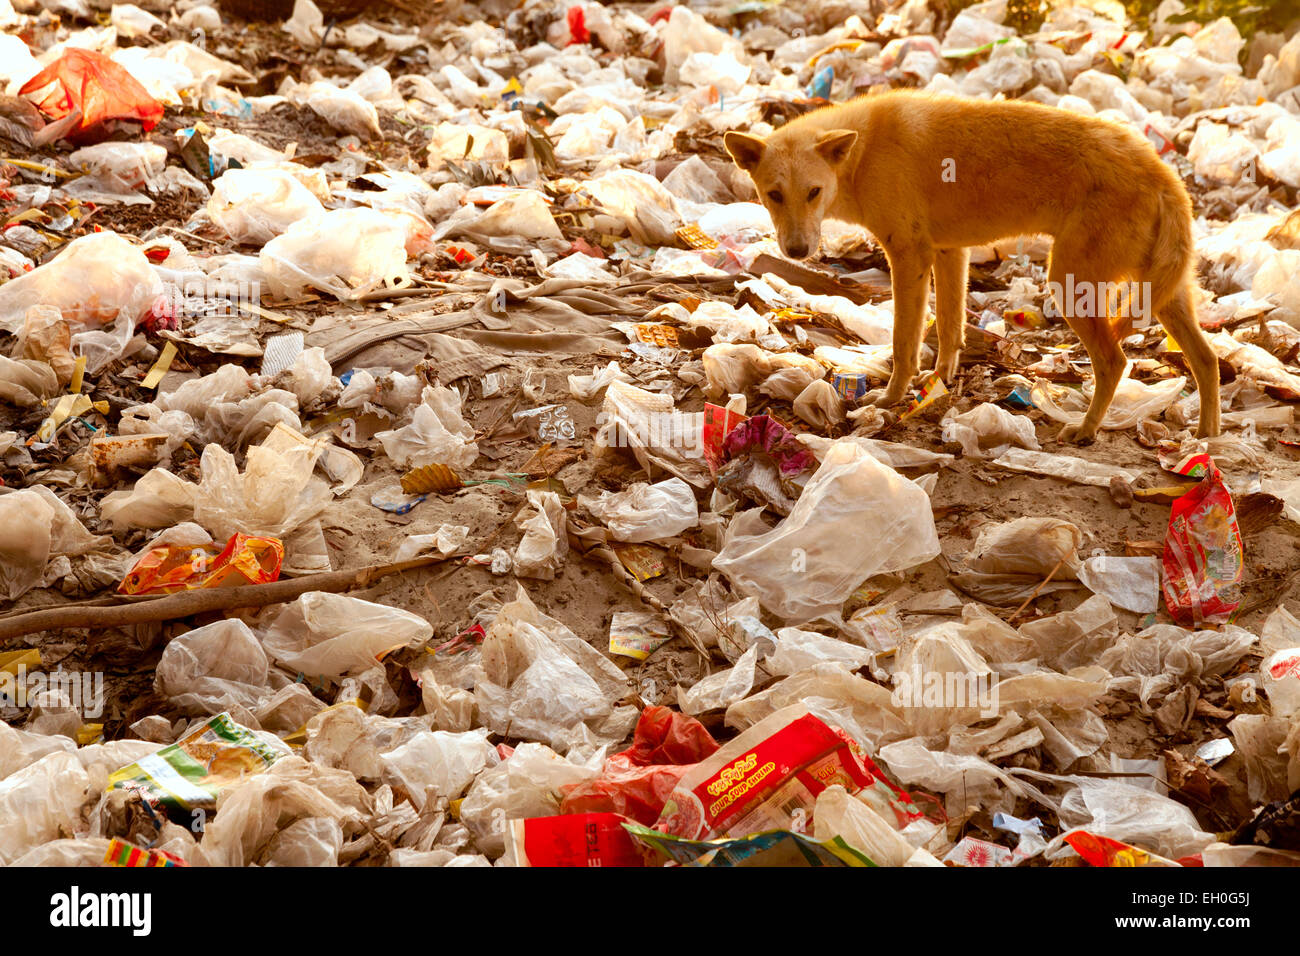 A dog foraging on a rubbish heap - example of pollution; Mandalay, Myanmar ( Burma ),  Asia - Stock Image